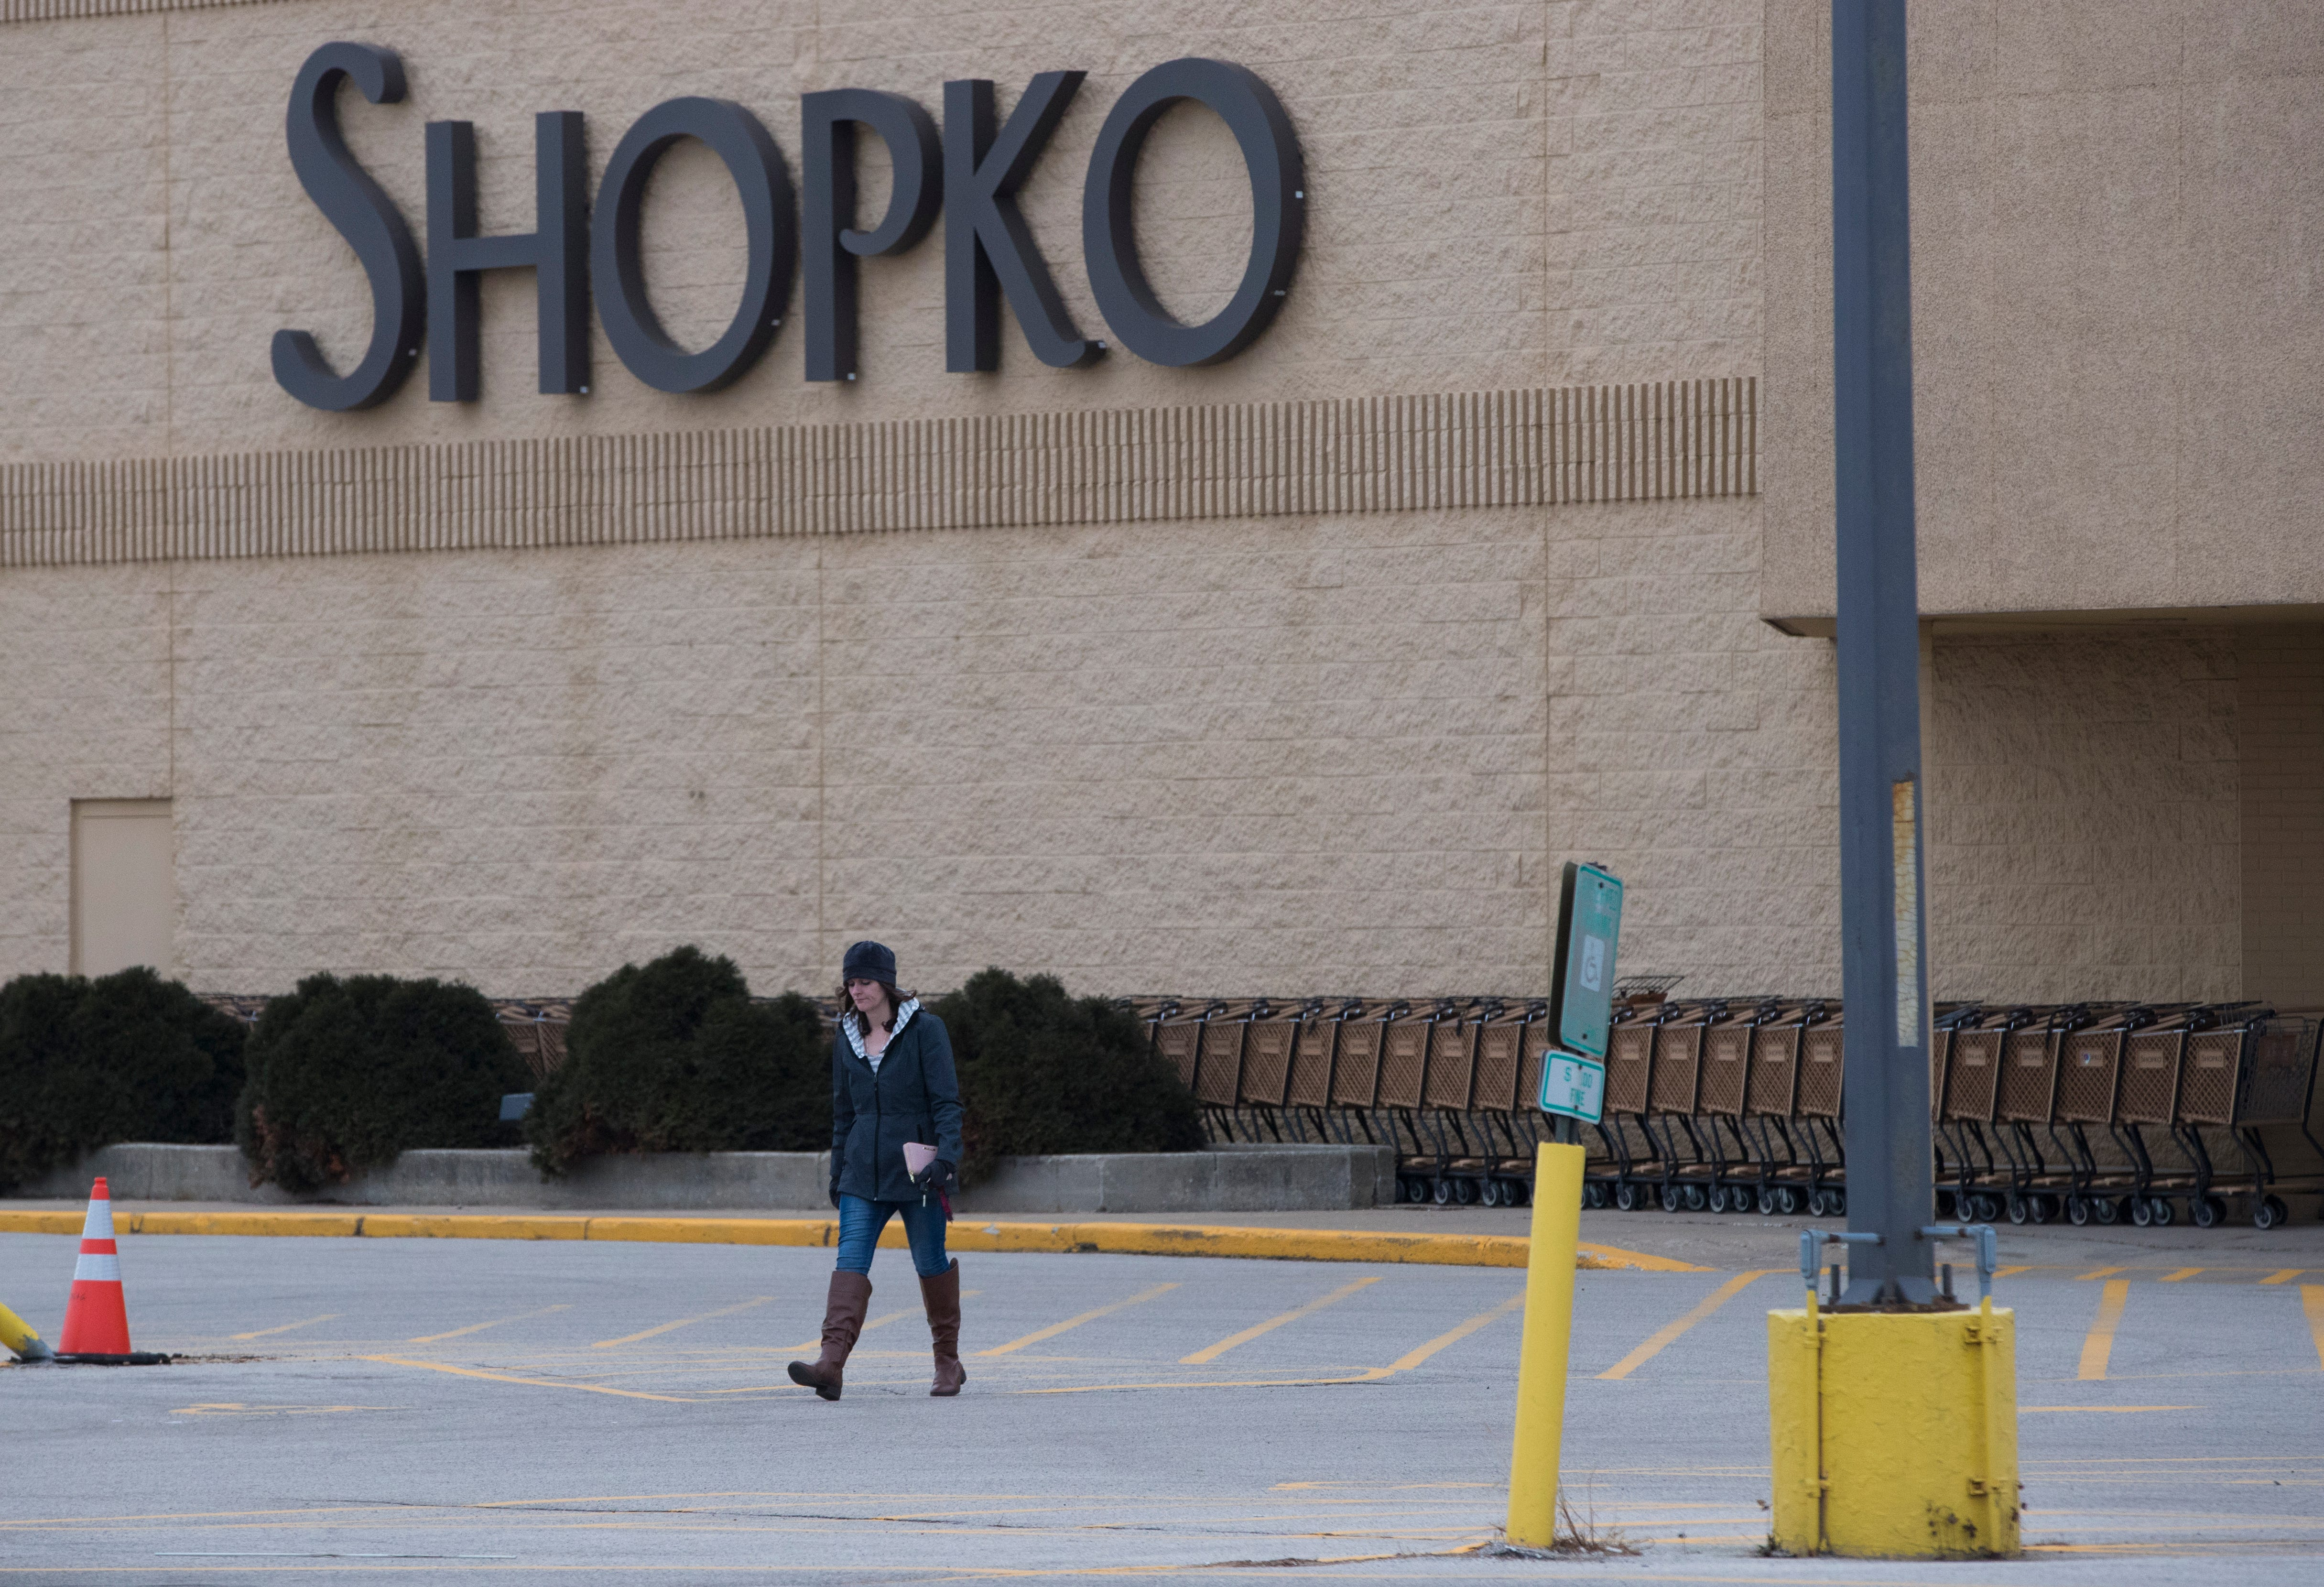 retailer shopko will cut 580 jobs in first wave of store